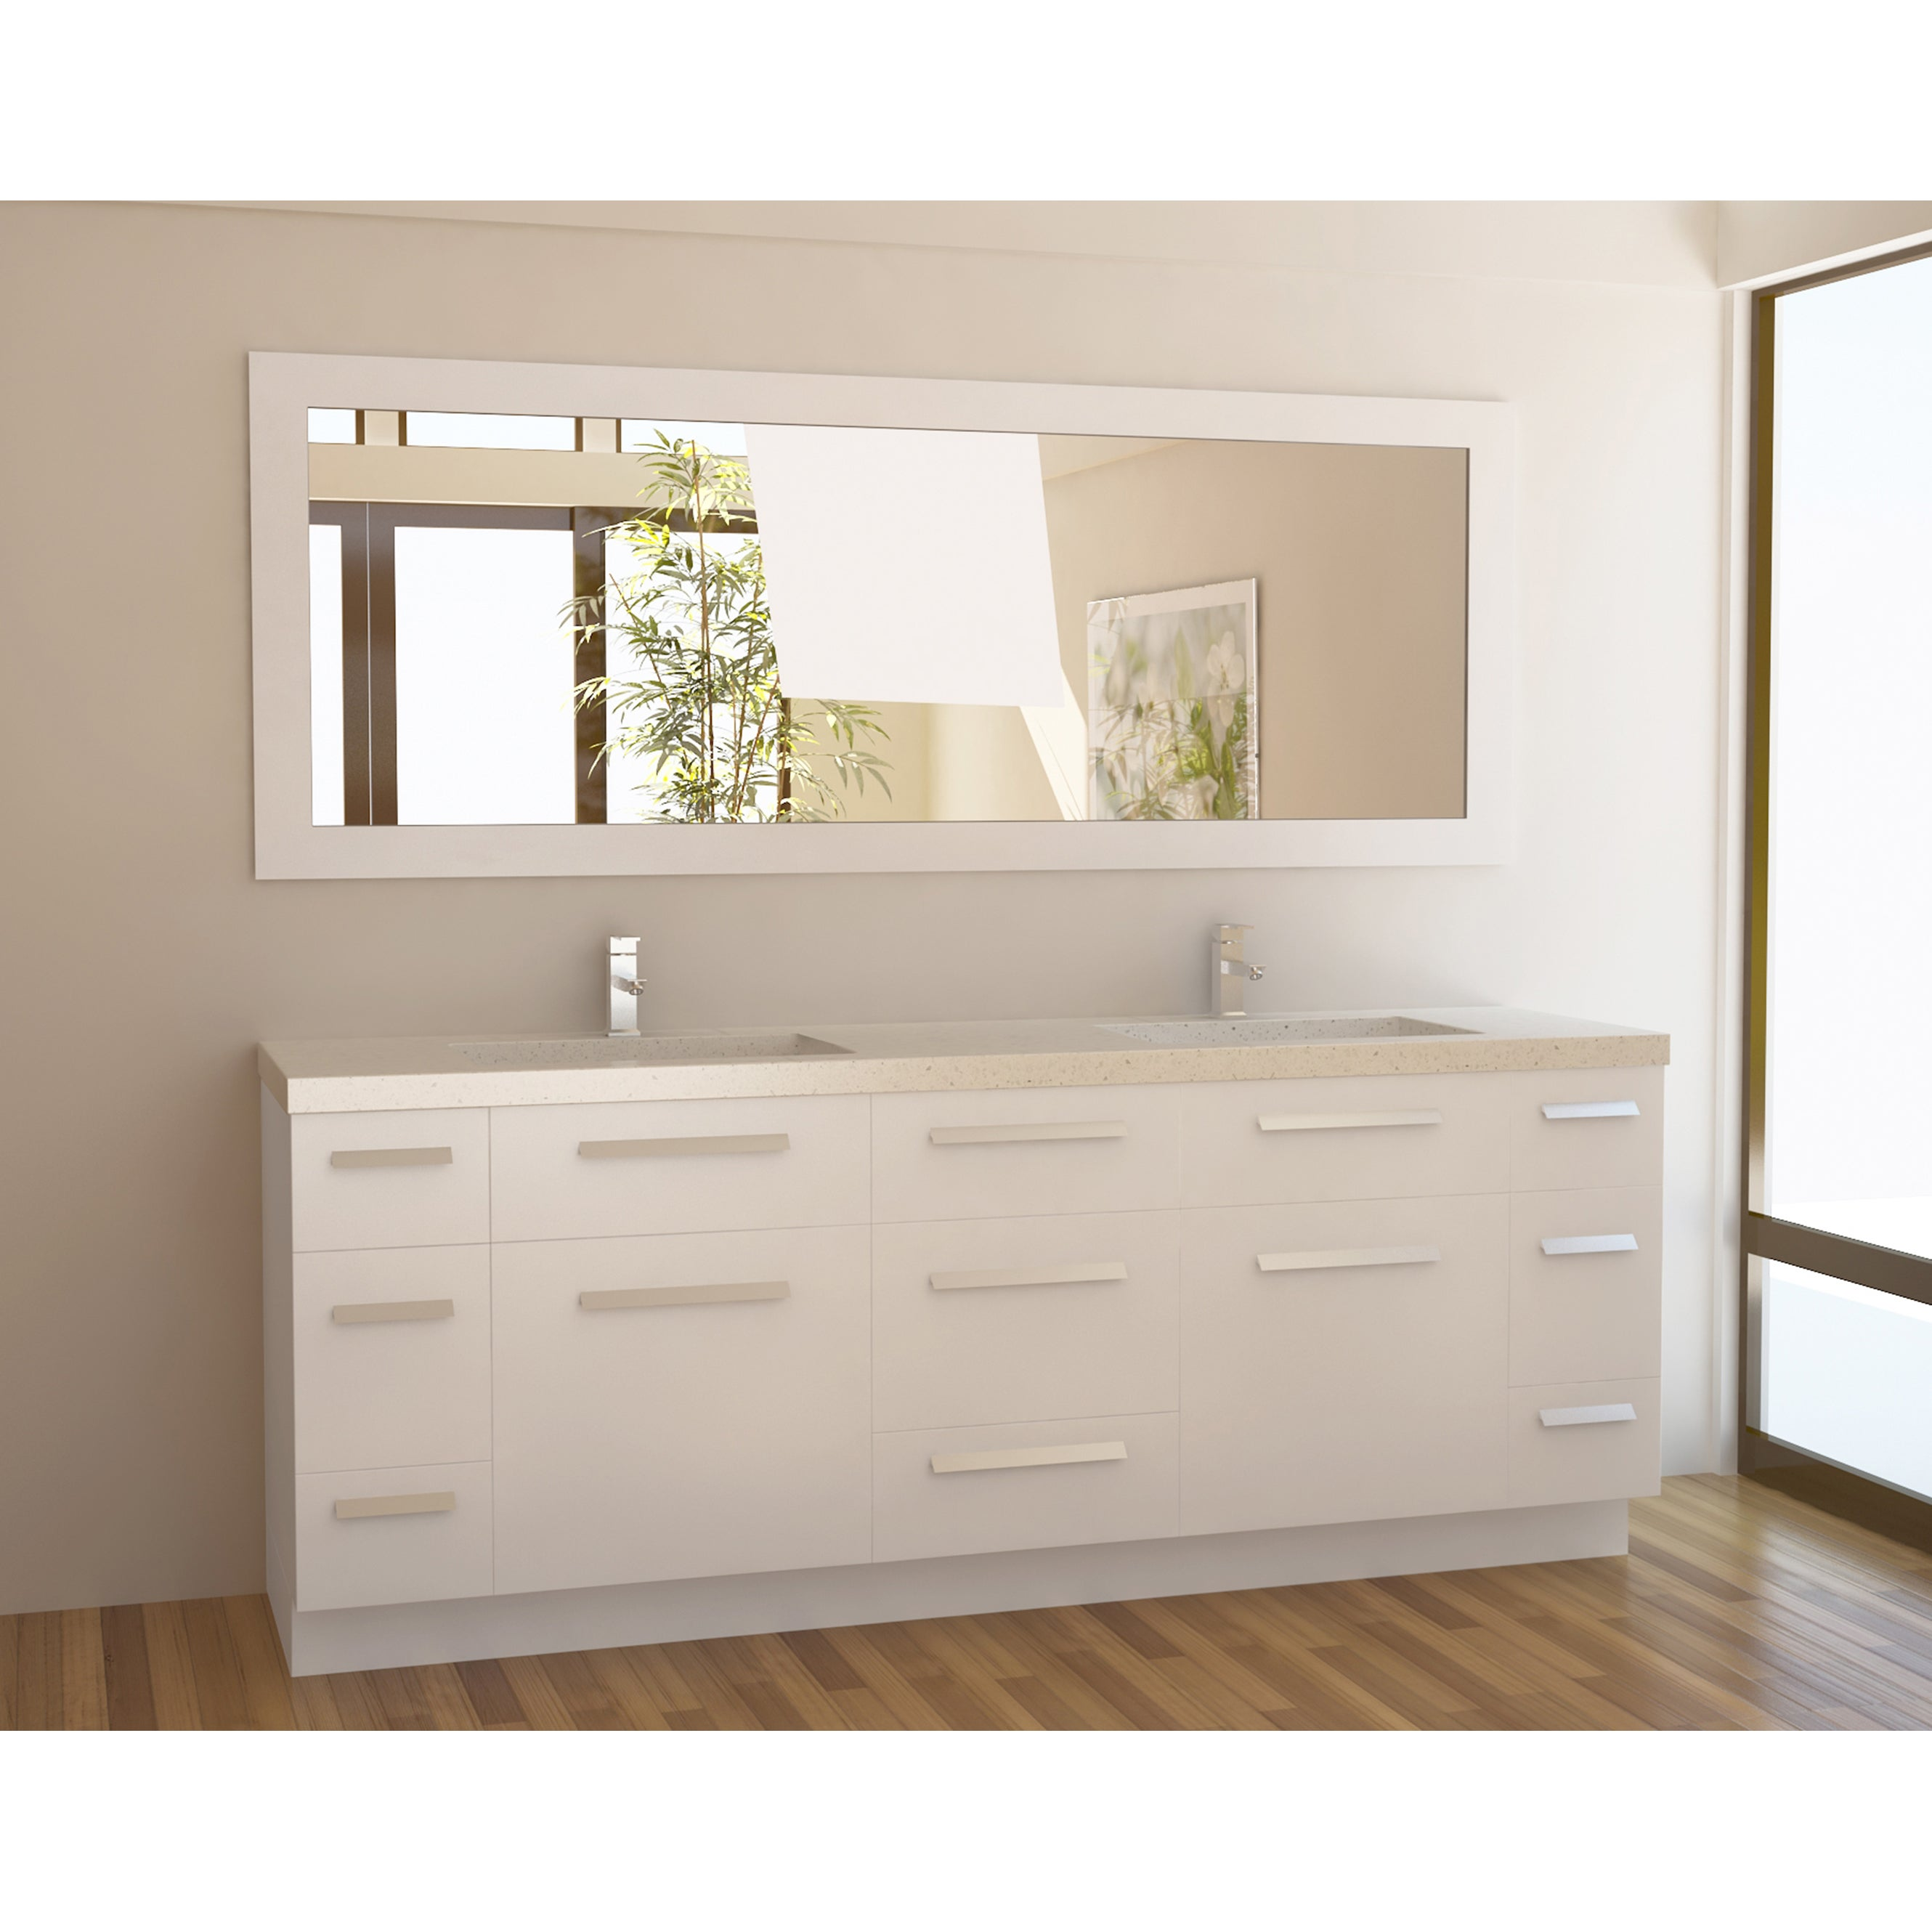 Shop Design Element Moscony 84-inch Quartz Double Sink Pearl White ...